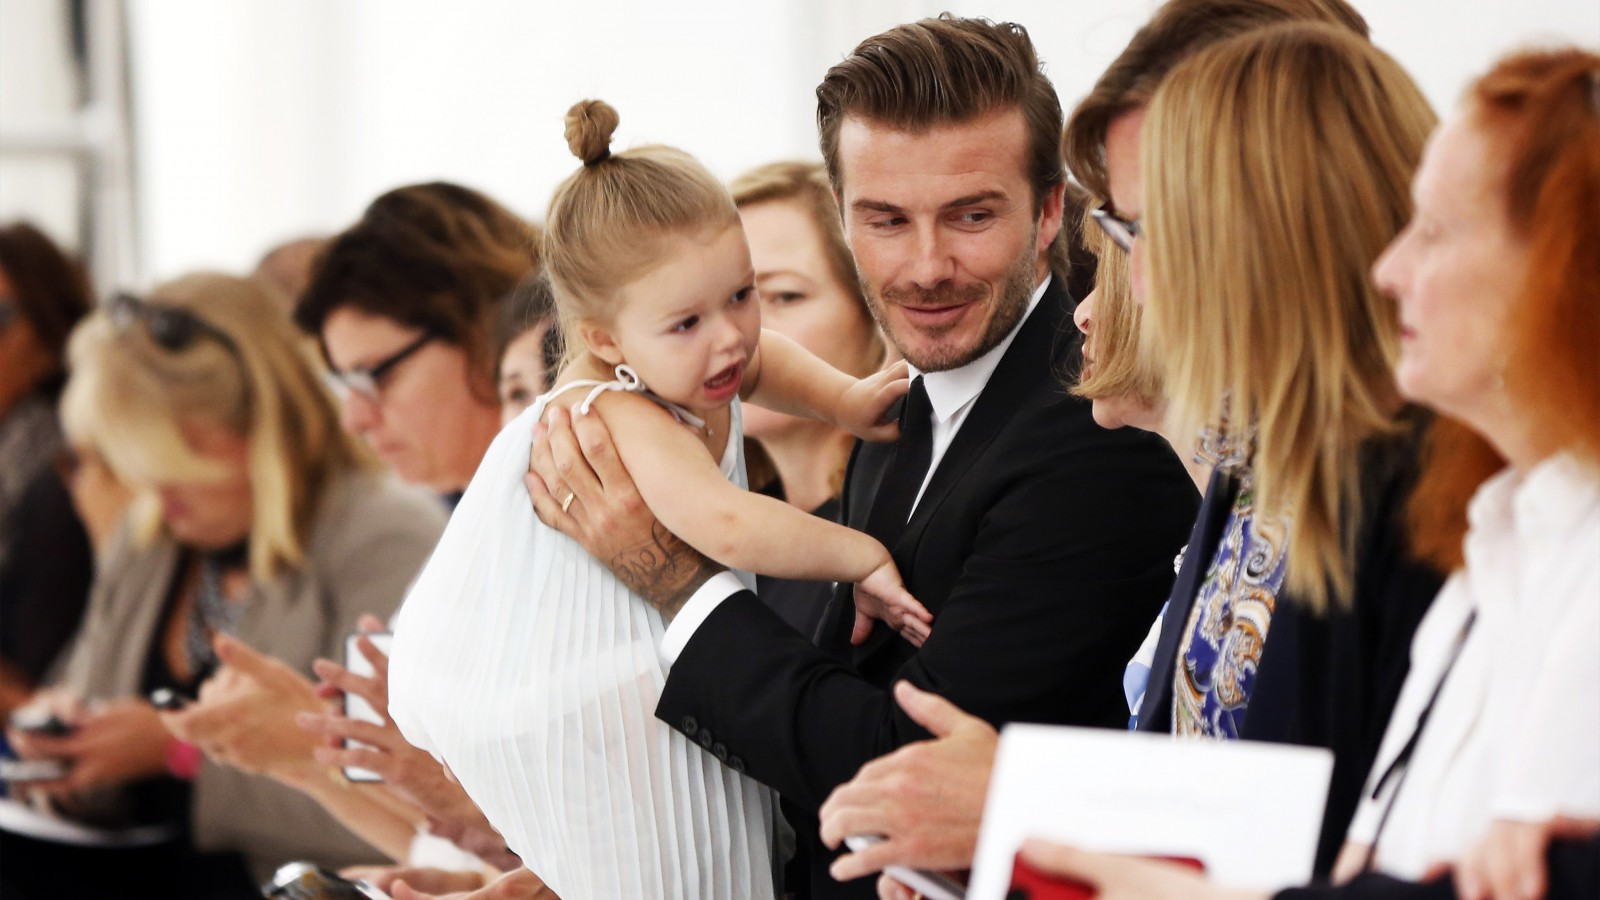 Former England soccer captain David Beckham holds his daughter Harper while waiting for a presentation of the Victoria Beckham Spring/Summer 2014 collection during New York Fashion Week, September 8, 2013. REUTERS/Lucas Jackson (UNITED STATES - Tags: FASHION ENTERTAINMENT SPORT SOCCER) - RTX13CVD